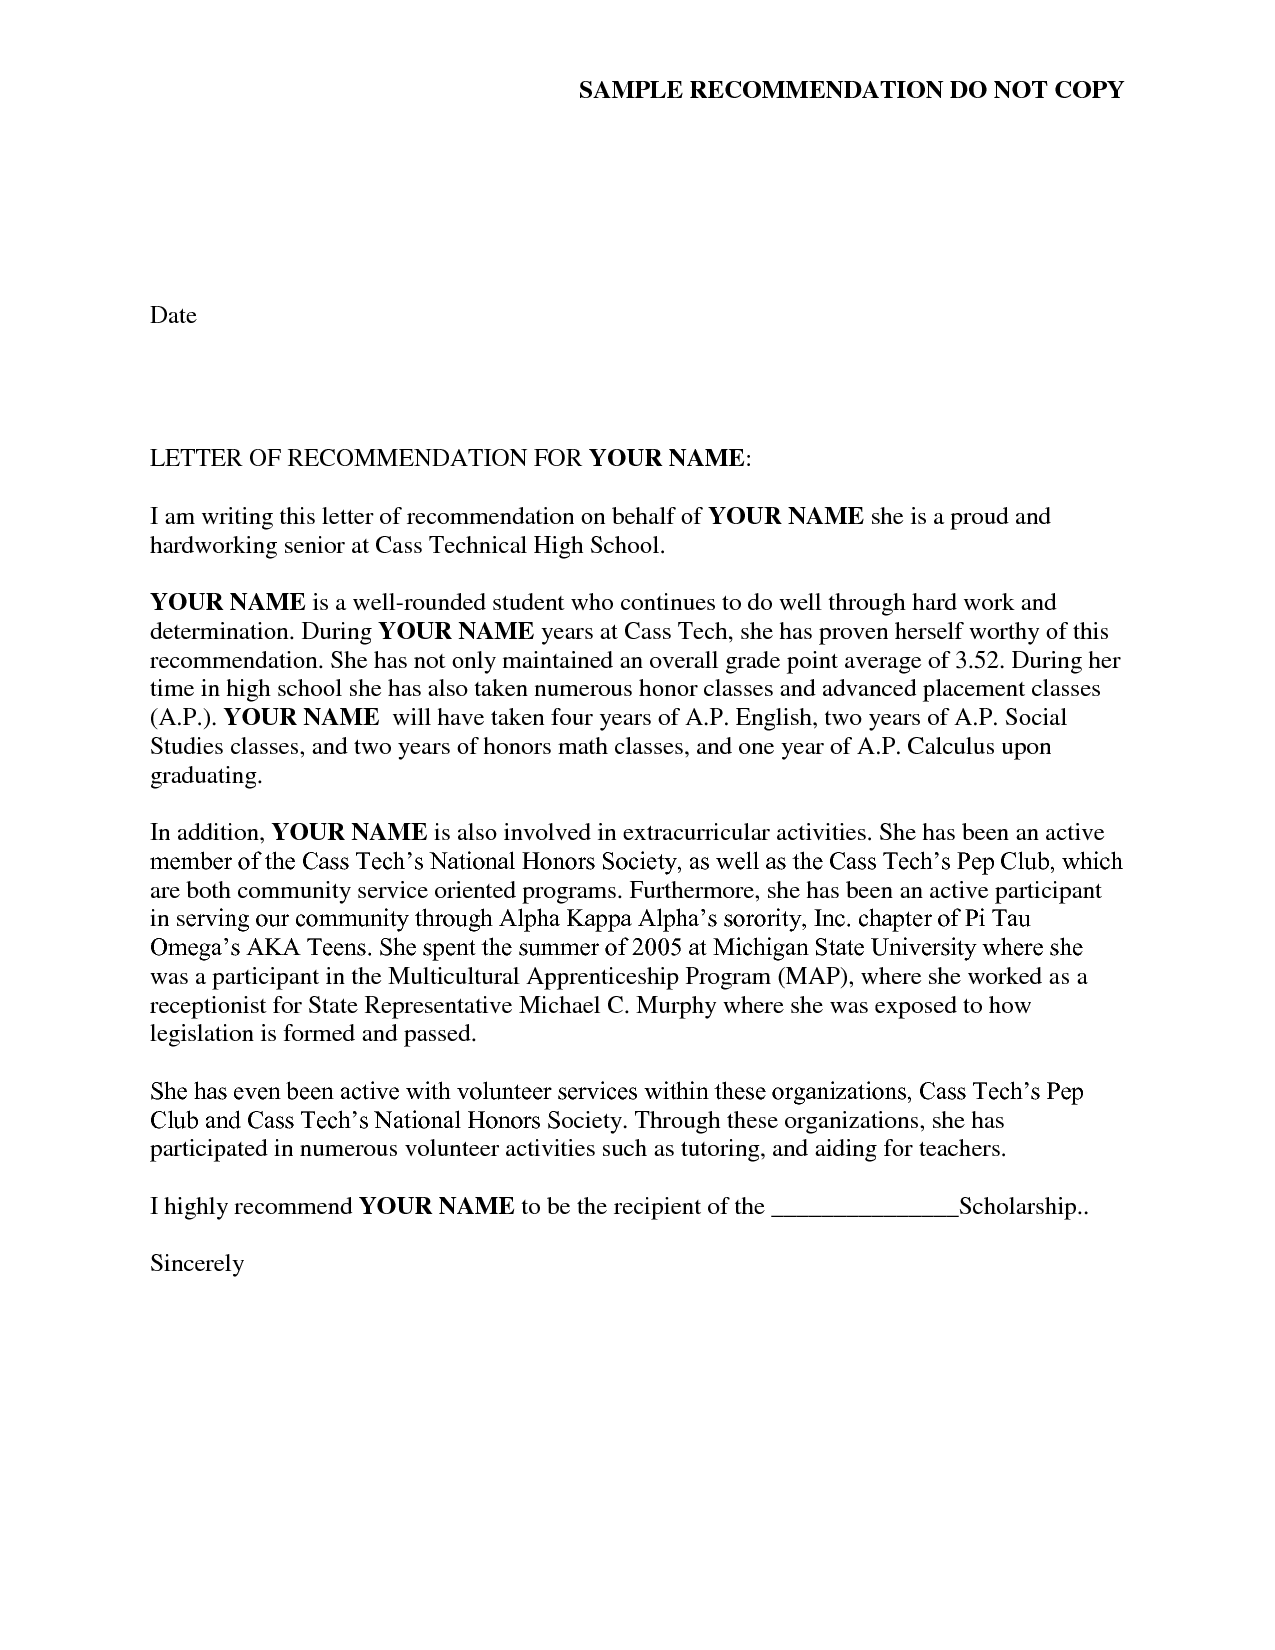 Reference letter of recommendation sample sample alpha kappa alpha reference letter of recommendation sample sample alpha kappa alpha recommendation letter altavistaventures Gallery